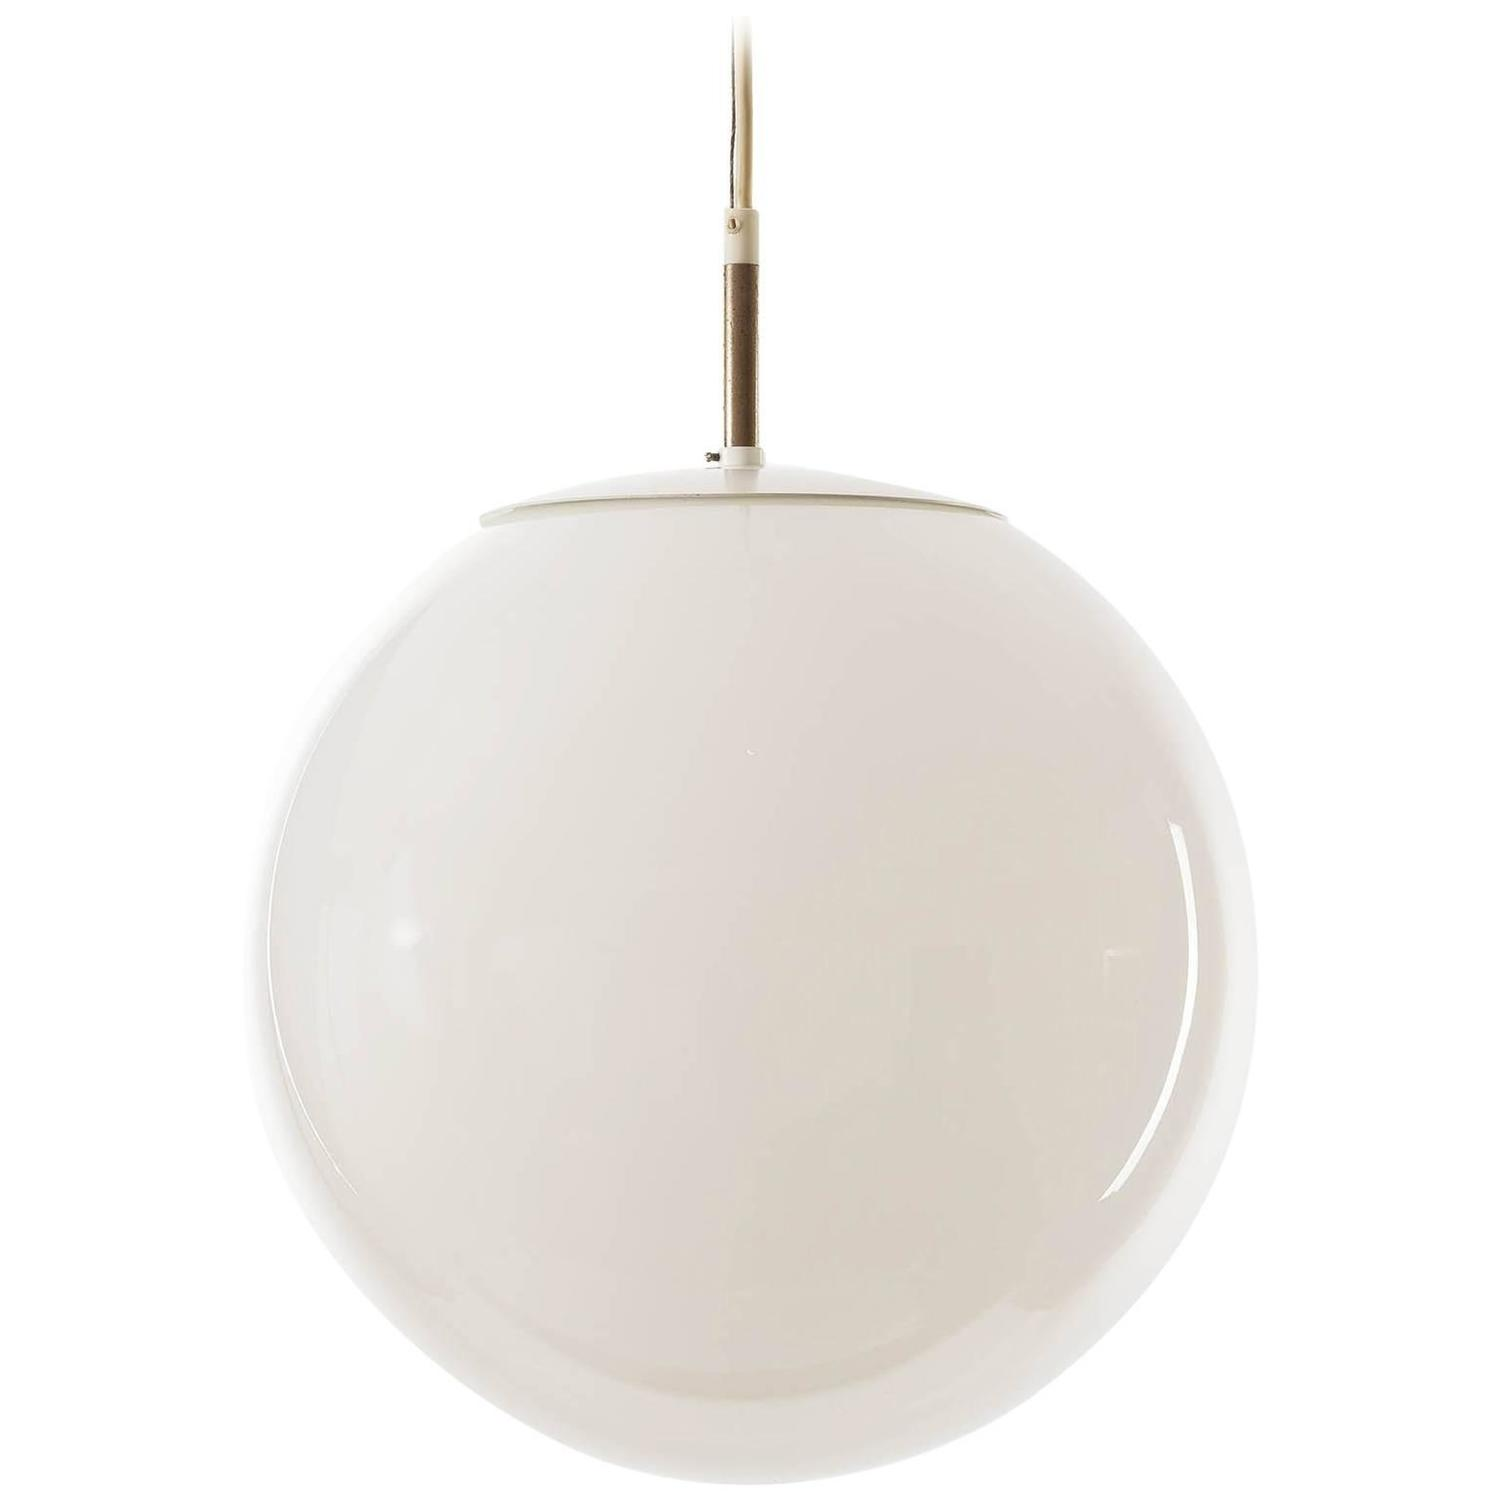 RAAK Pendant Light, Opal Glass Globe, 1960s At 1stdibs